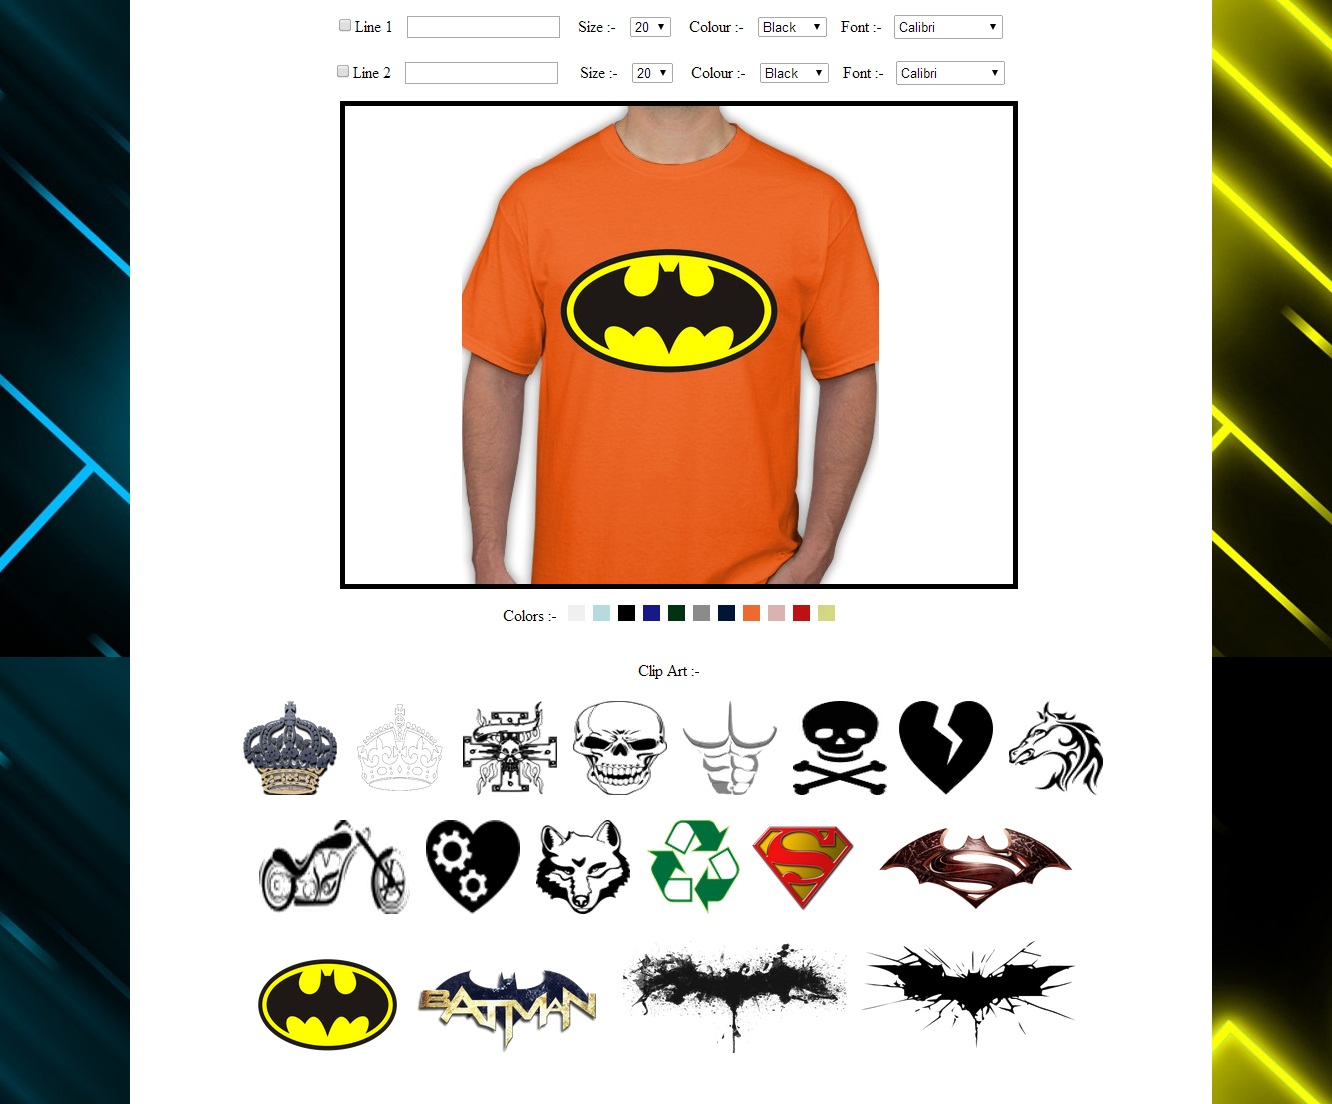 Online printed t shirt designing project nevonprojects for T shirt printing design software